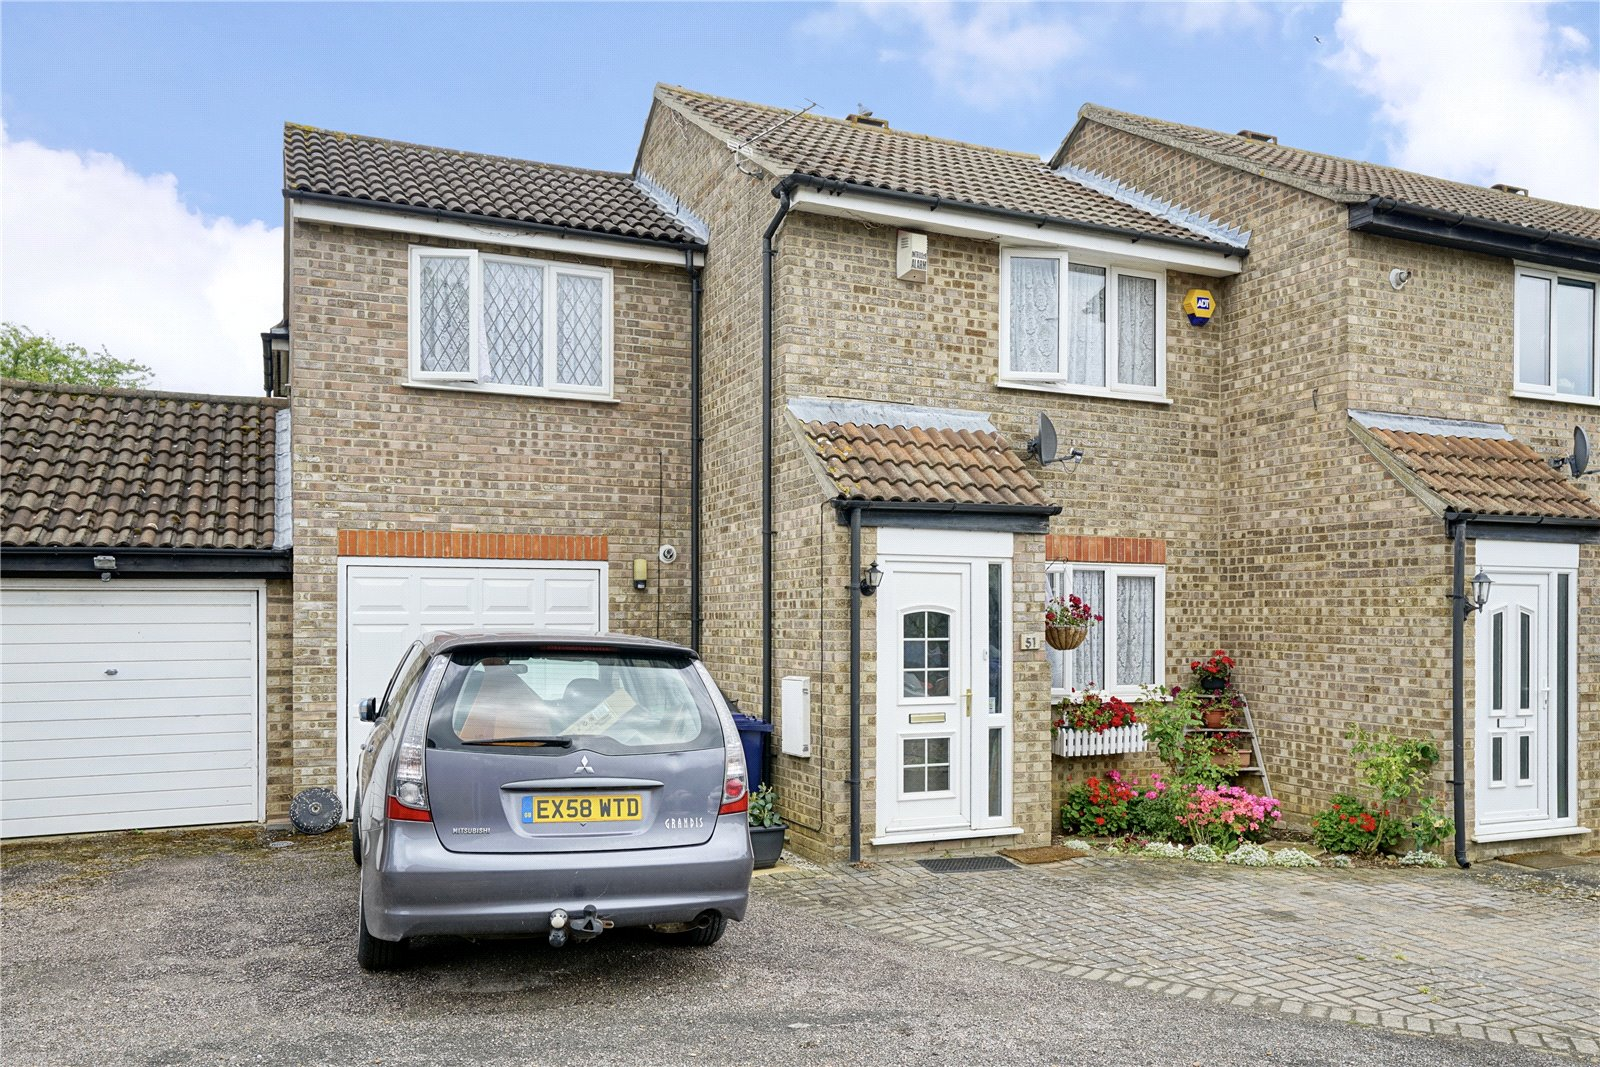 3 bed house for sale in Cunningham Way, Eaton Socon  - Property Image 2